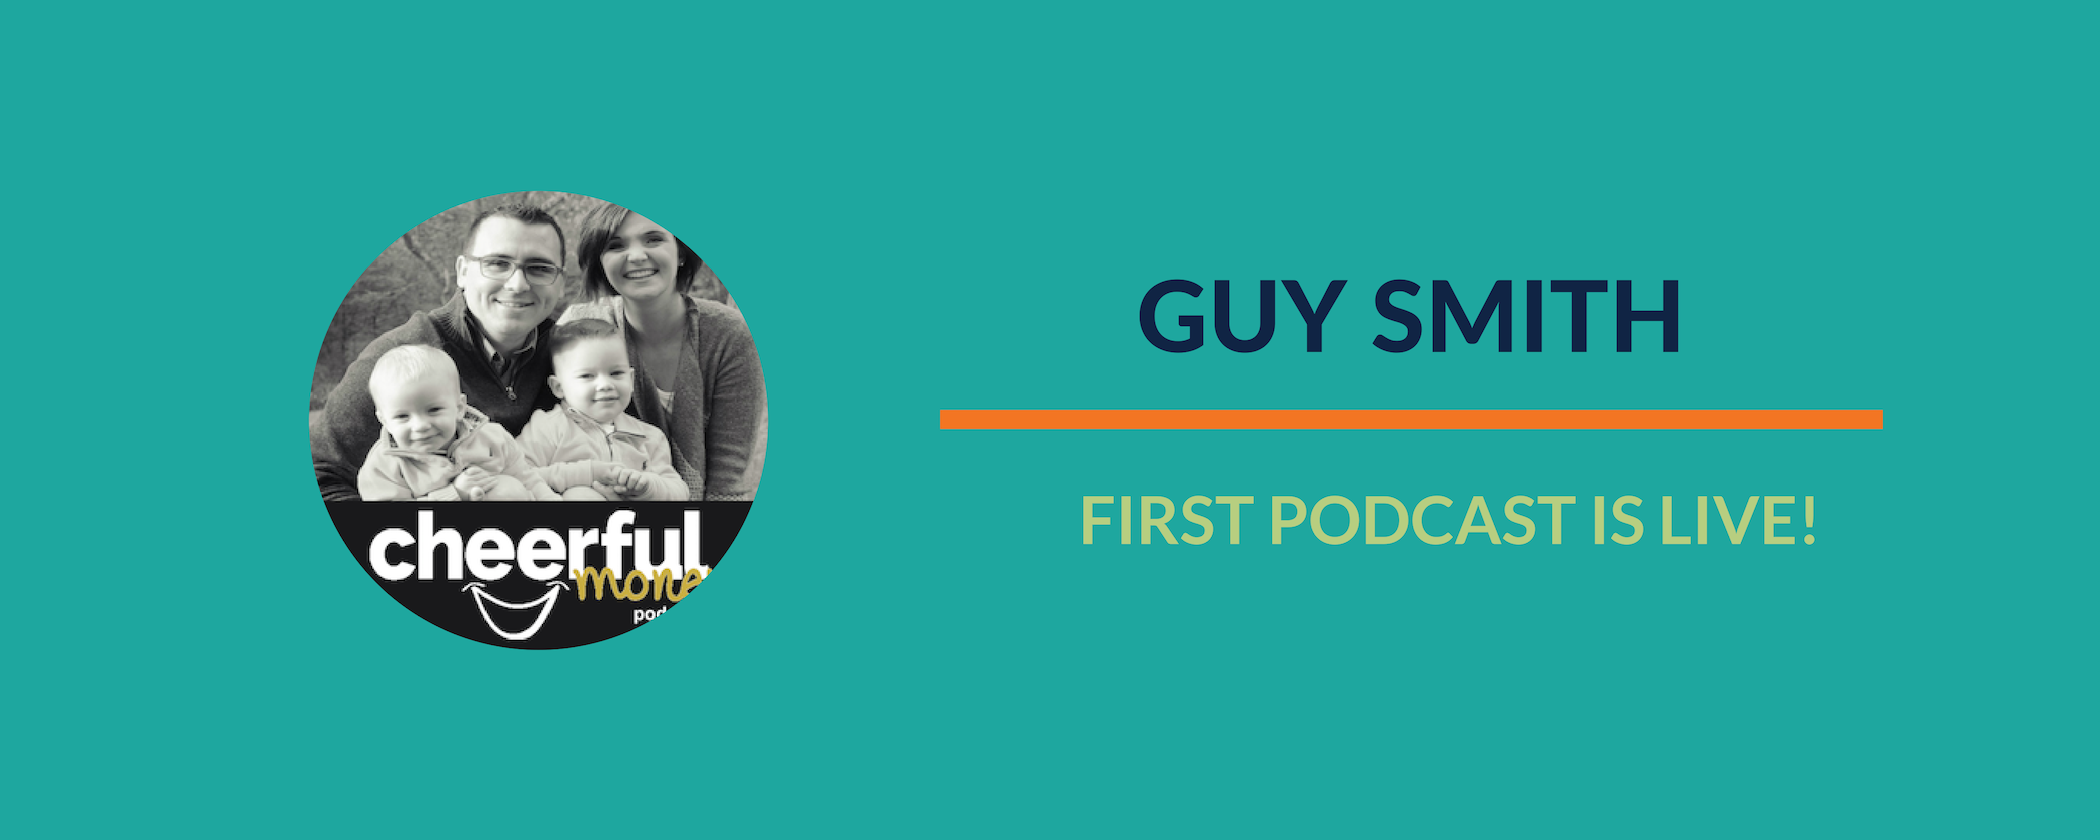 Success Story:  Congratulations to Guy on launching his first podcast episode!